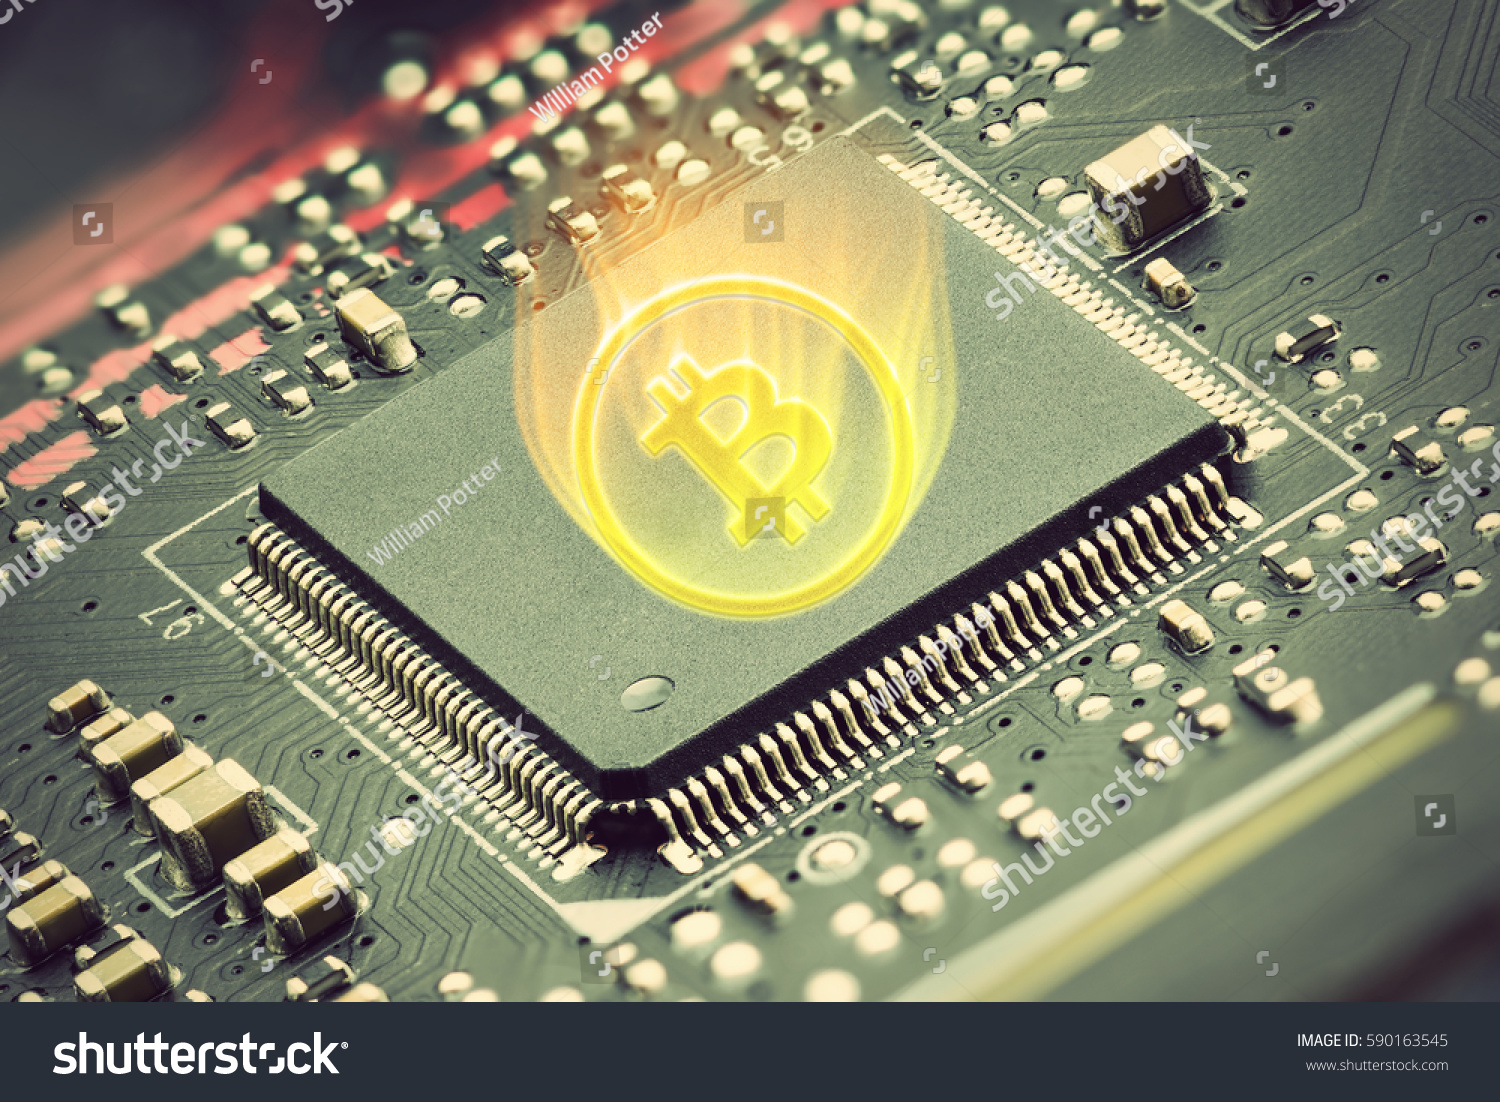 Cpu On Printed Circuit Board Digital Stock Photo Edit Now Photos Images Pictures Shutterstock A With Currency Symbol Is Distinct